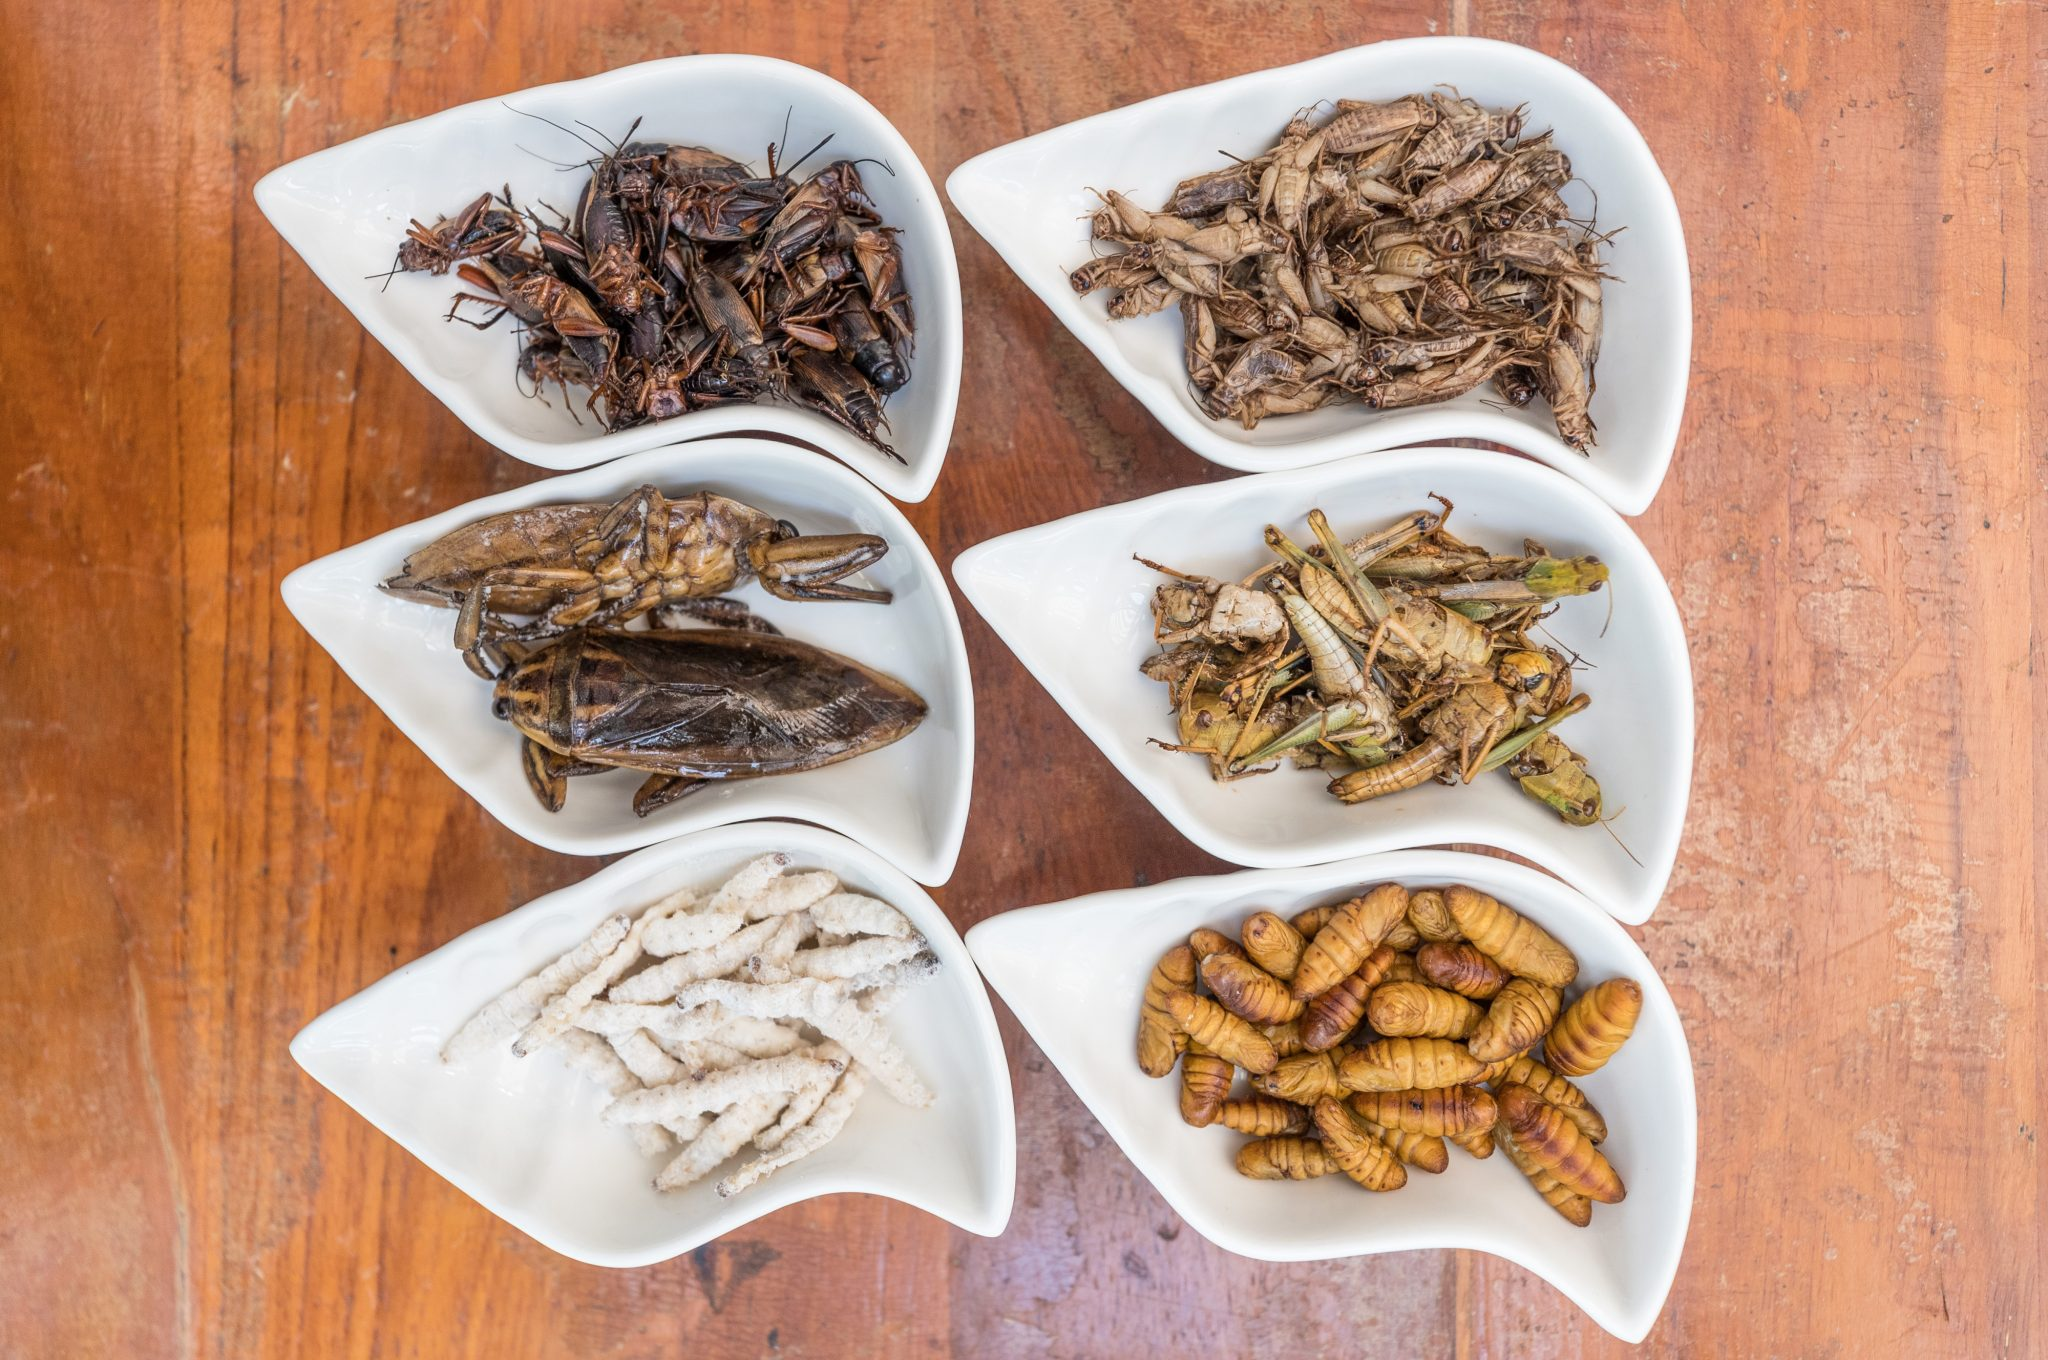 Red and white crickets, giant water beetles and grasshoppers, bamboo caterpillars and silkworms. Photo by Stan Lee/KCRW